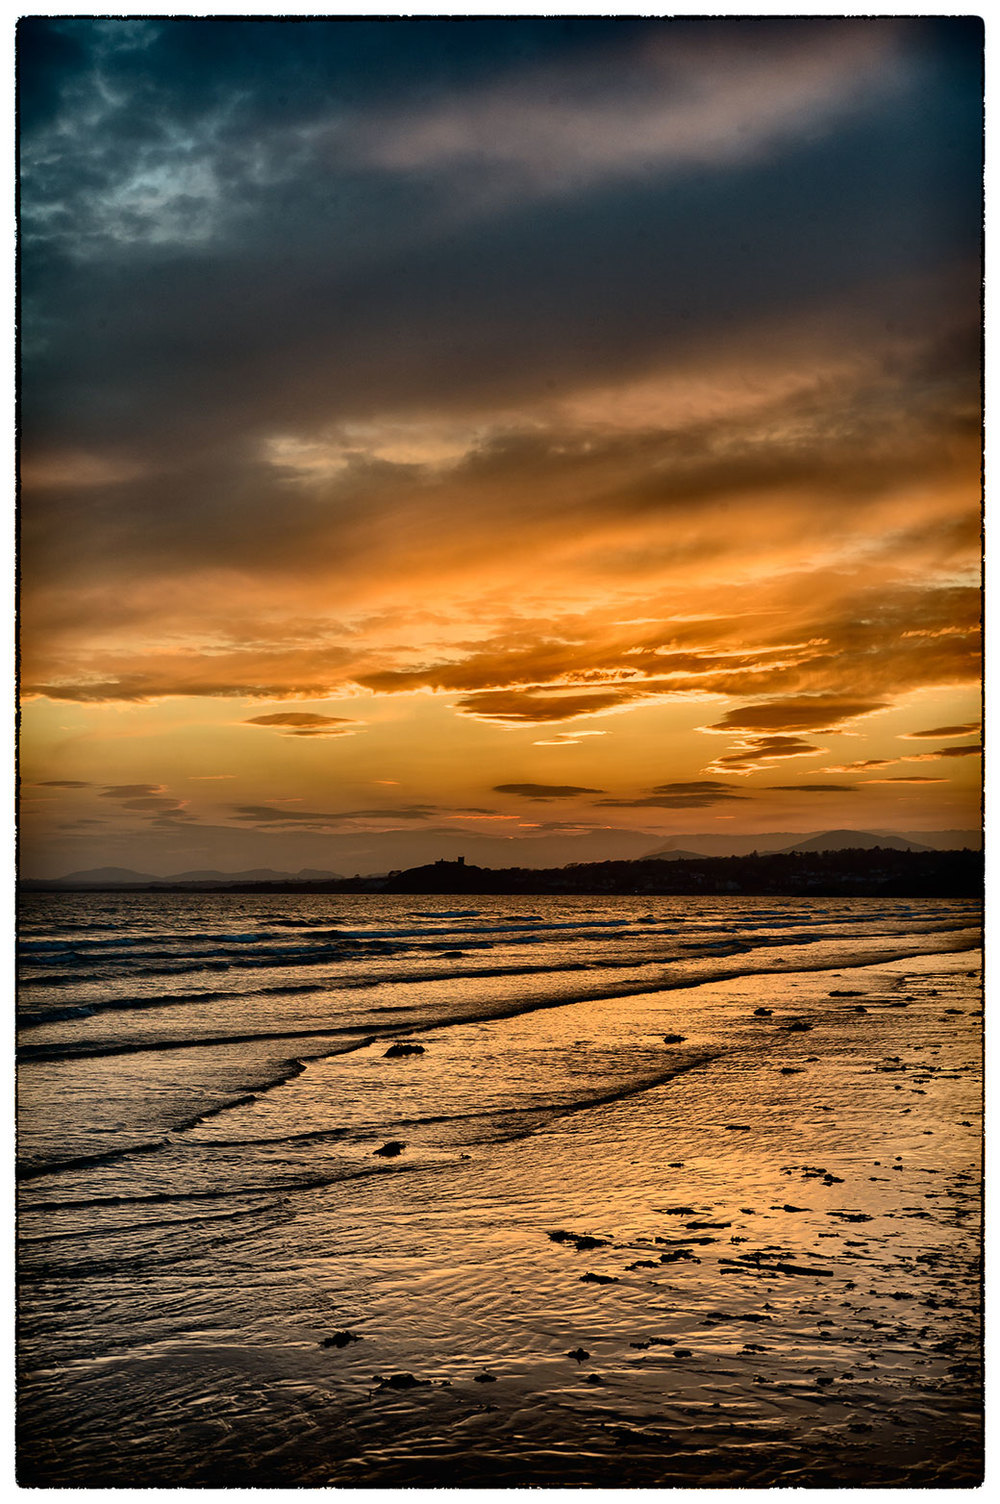 Another shot of a glorious sunset at Porthmadog.